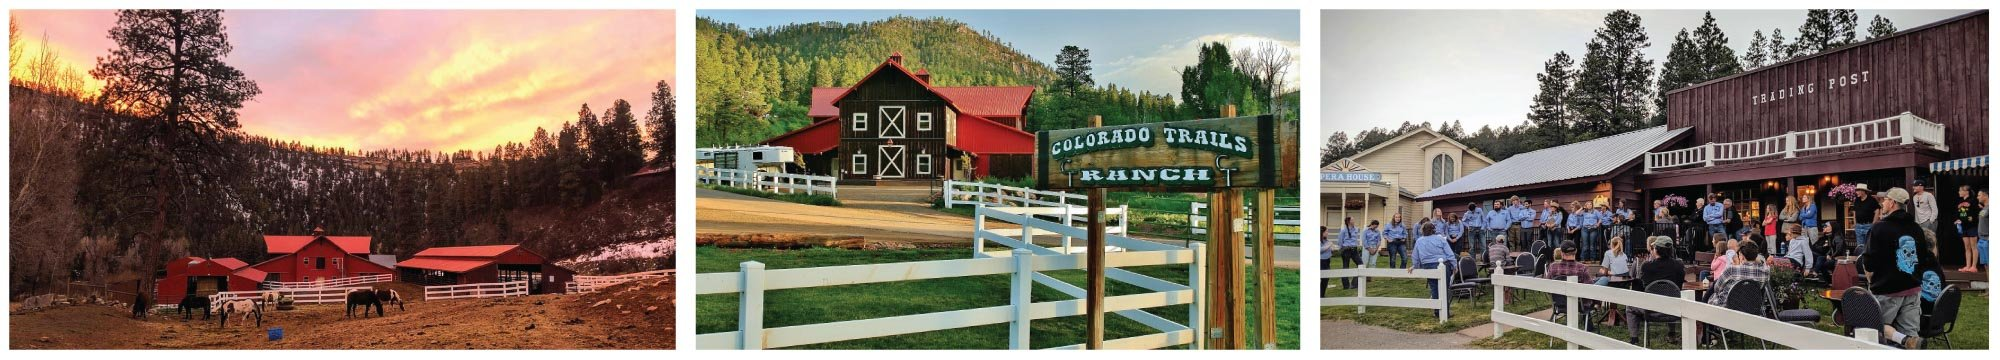 Ranch Stay Durango